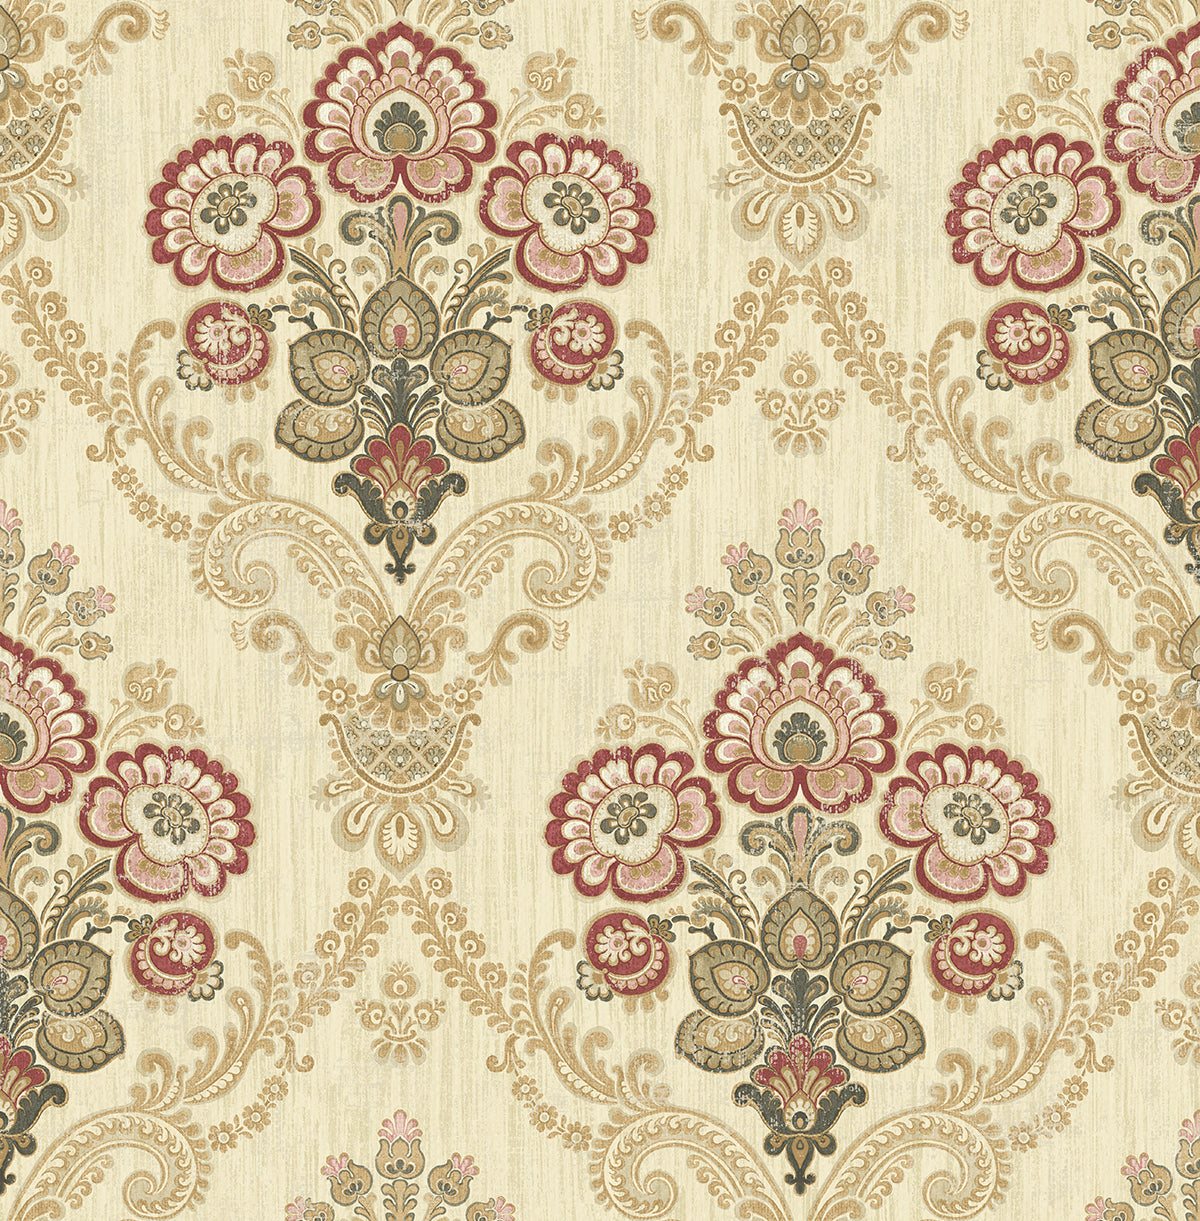 Framed Imperial Bouquet Wallpaper in Red and Gold from the Caspia ...